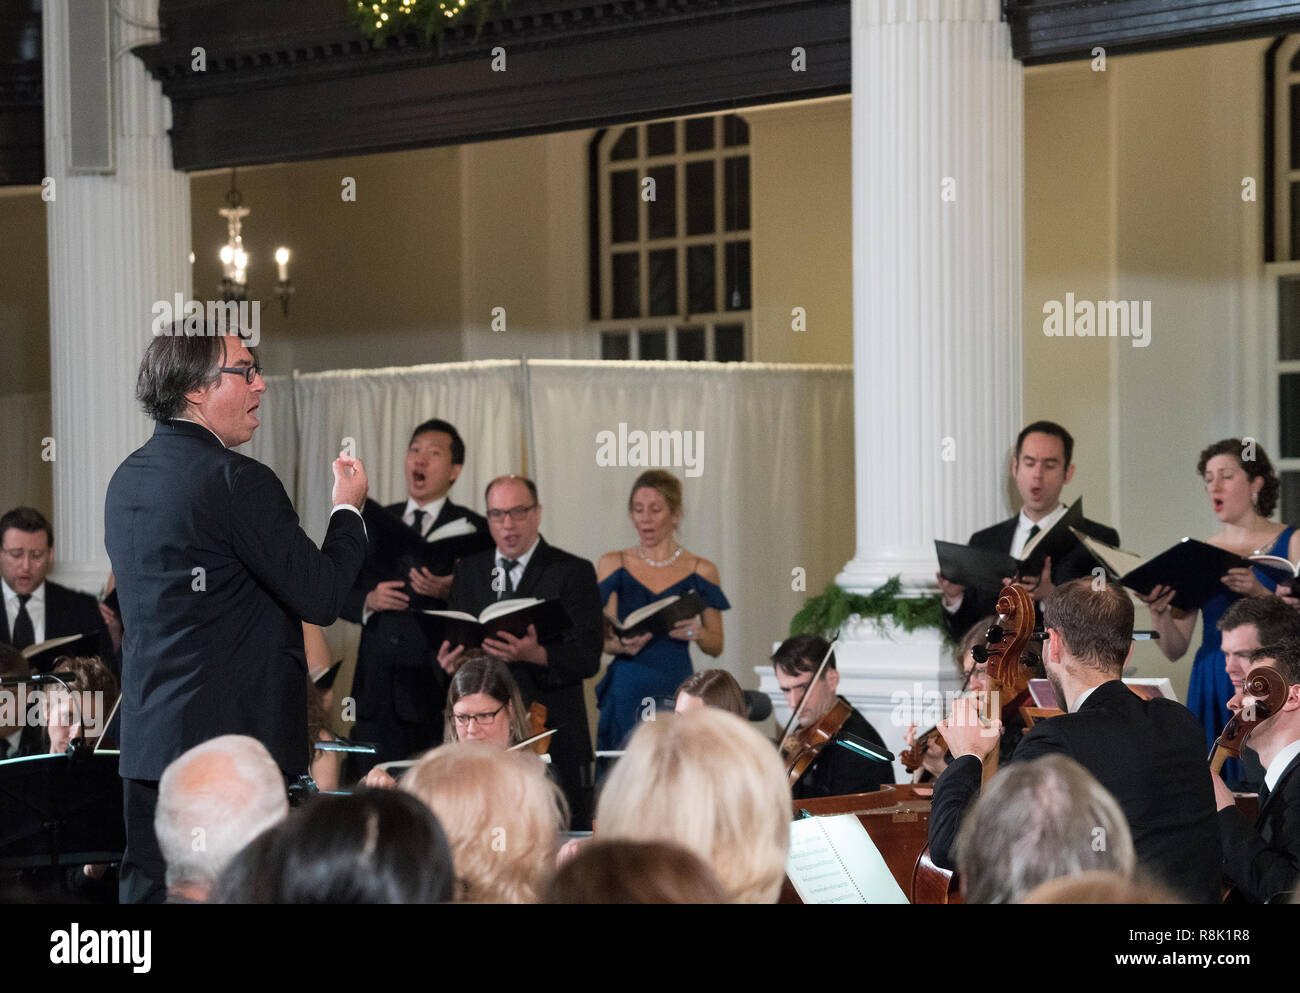 """Julian Wachner in St. Paul's Chapel conducting the Choir of Trinity Wall Street and the Trinity Baroque Orchestra in Handel's """"Messiah."""" - Stock Image"""